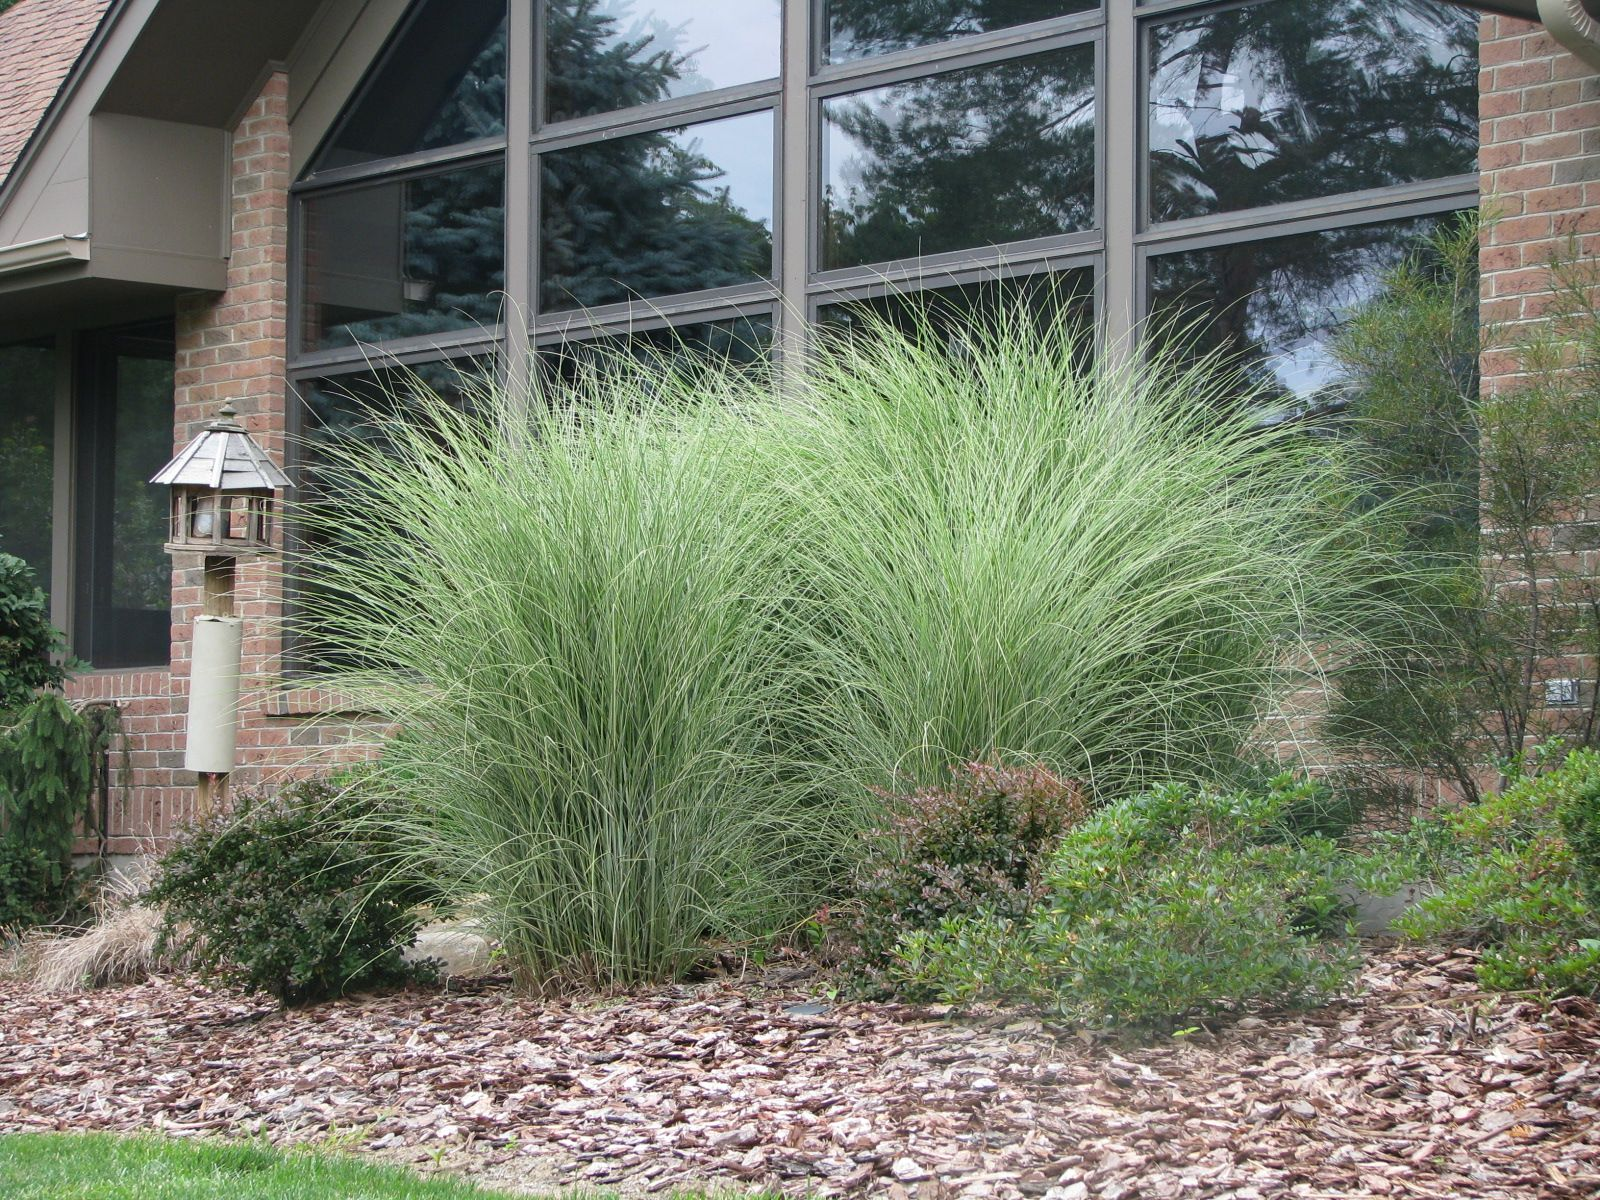 Grass random ornamental grass photos the alternative for Best ornamental grasses for landscaping